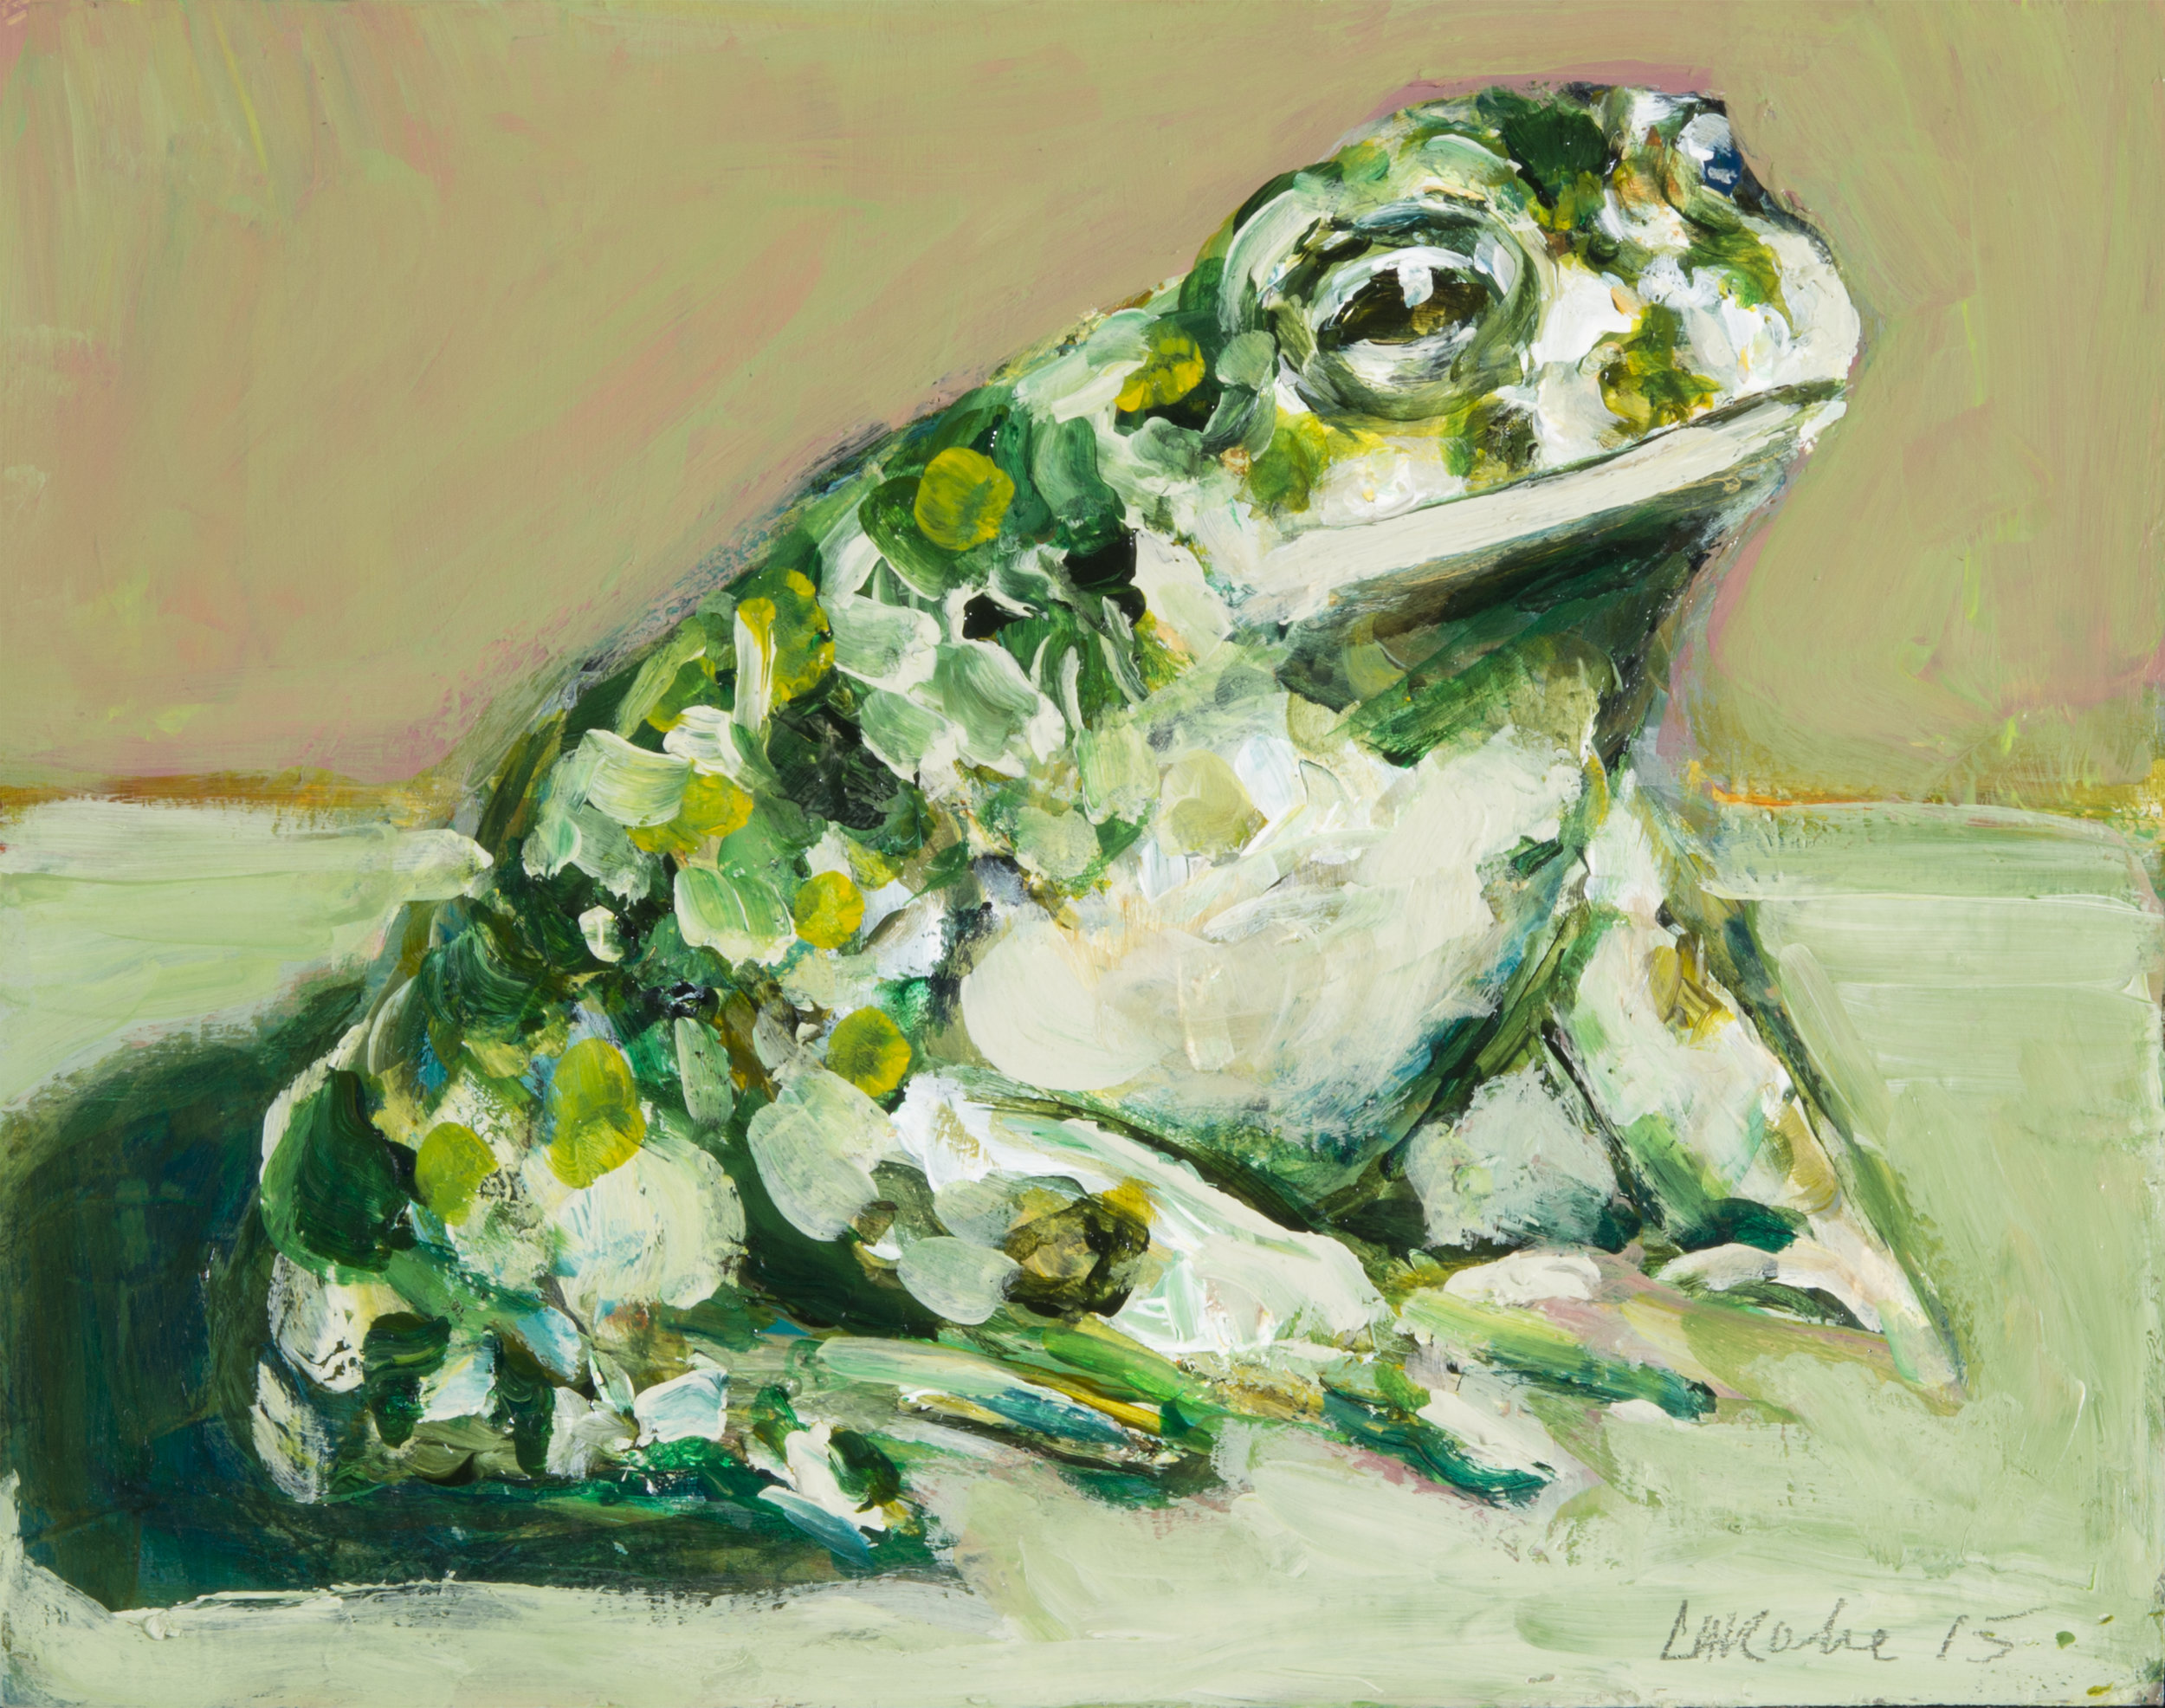 Prince Charming: I am not a frog  (ode to Aldwyth) I